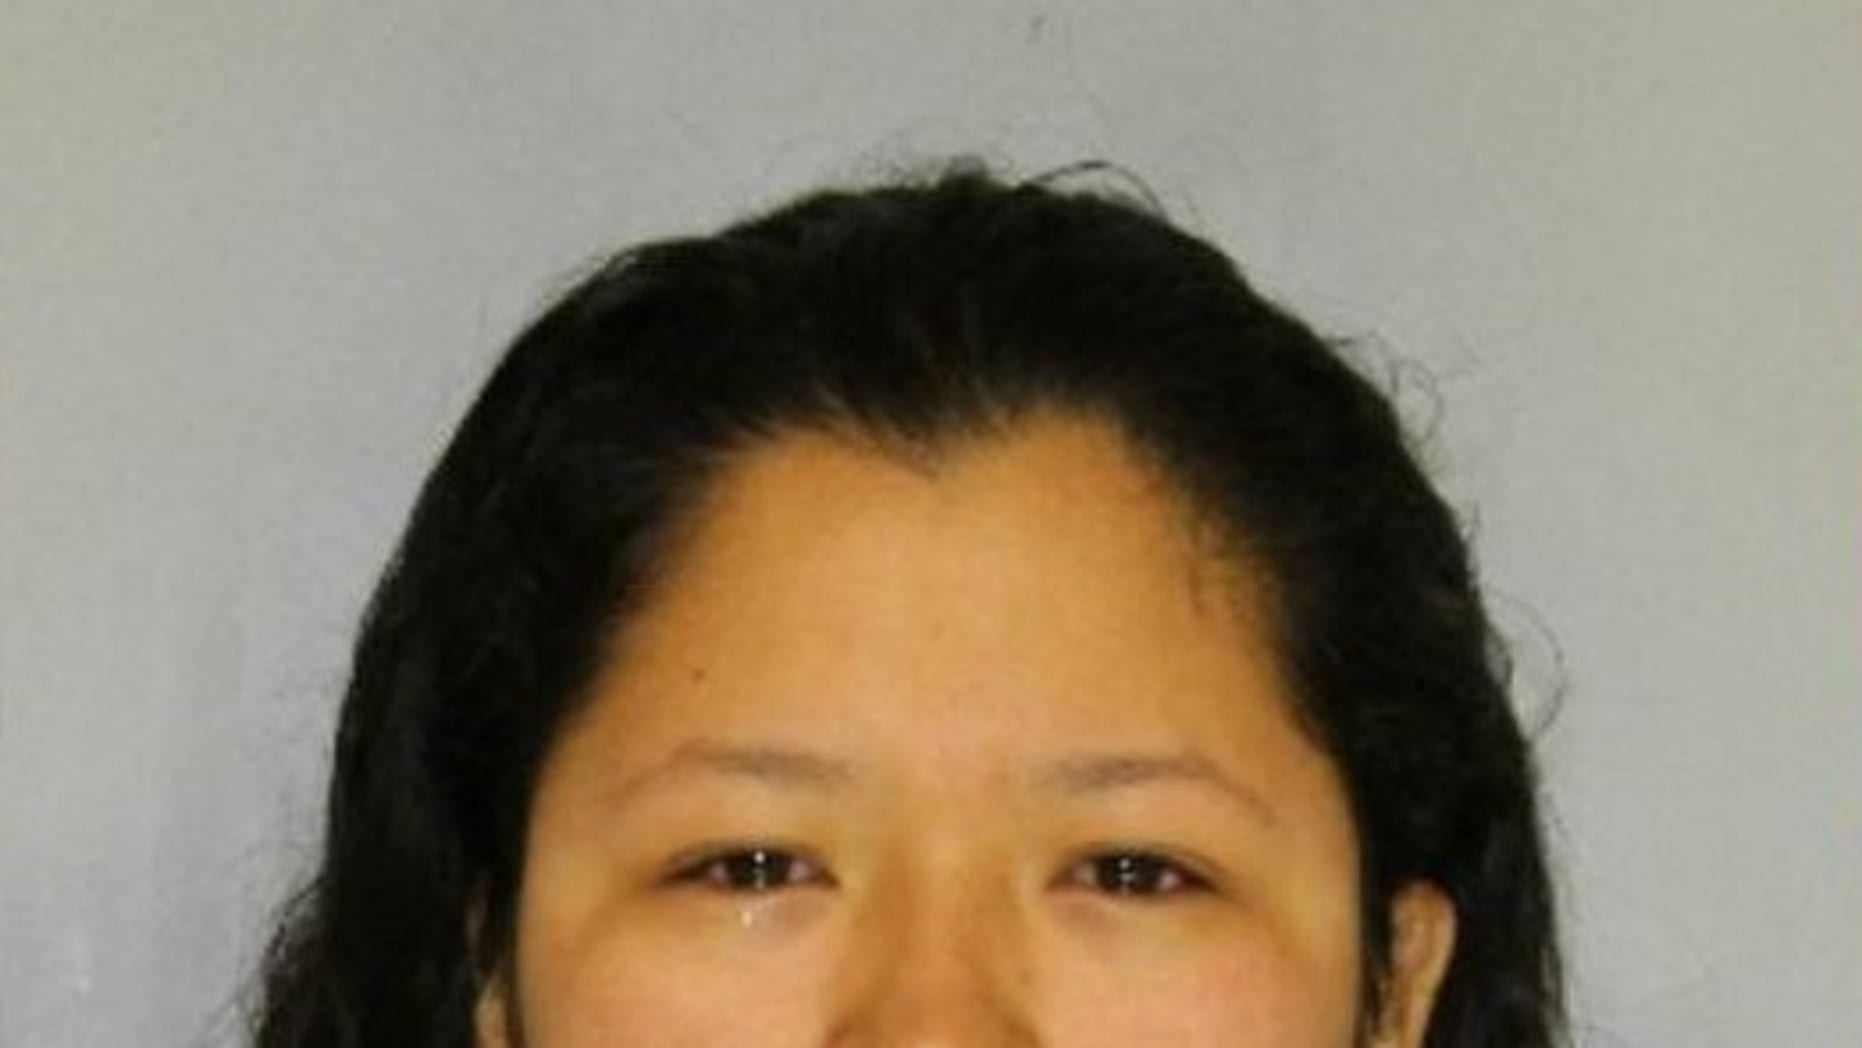 Alejandra Suarez, 26, reported herself to police after she realized she left her 3-year-old son locked in her vehicle for roughly three hours, the sheriff's office said.